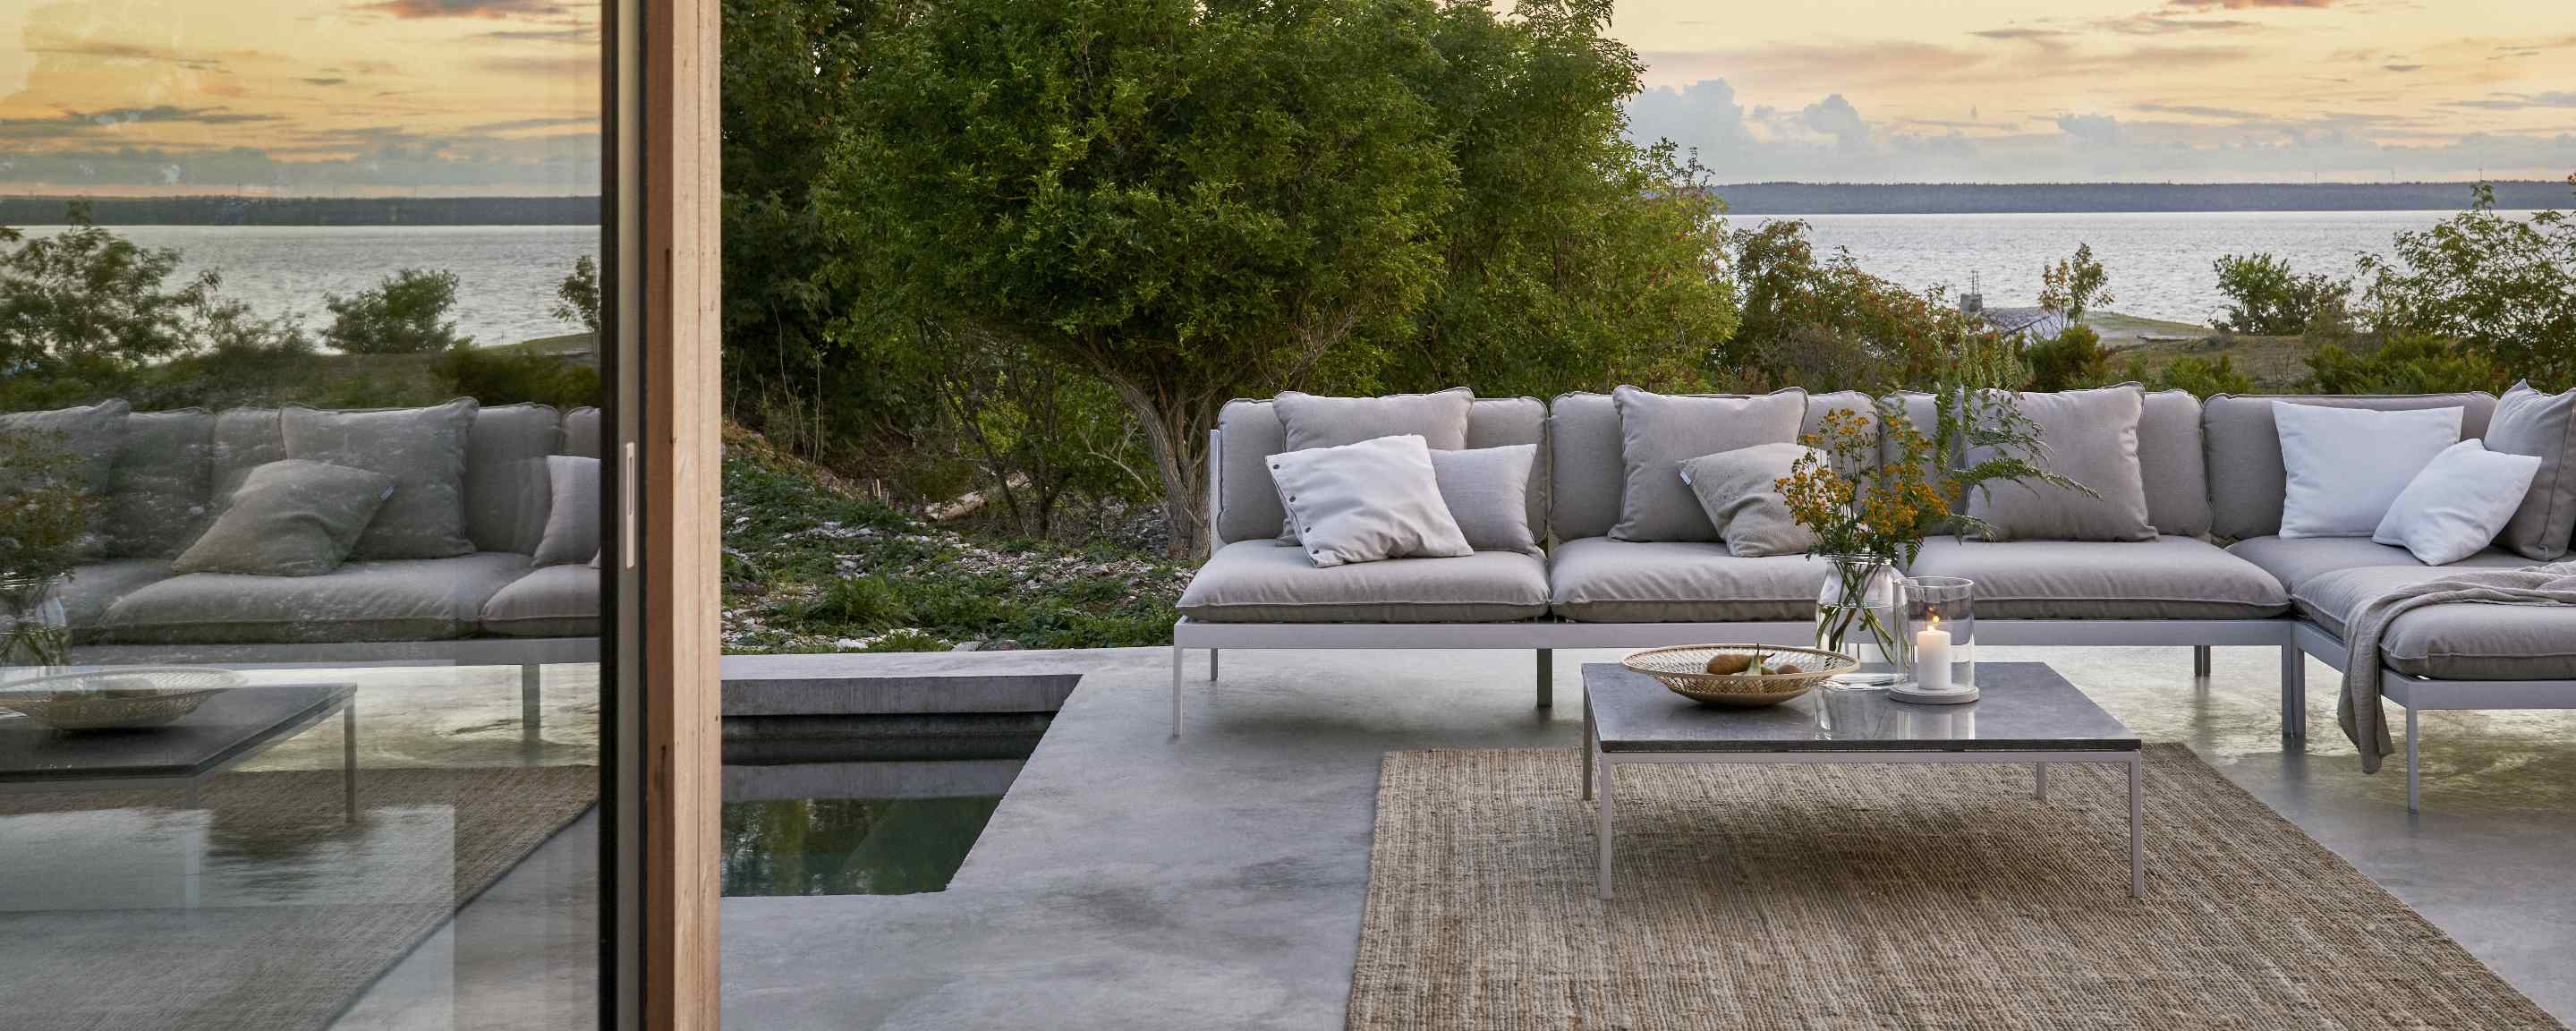 bonan lounge sofa sectional